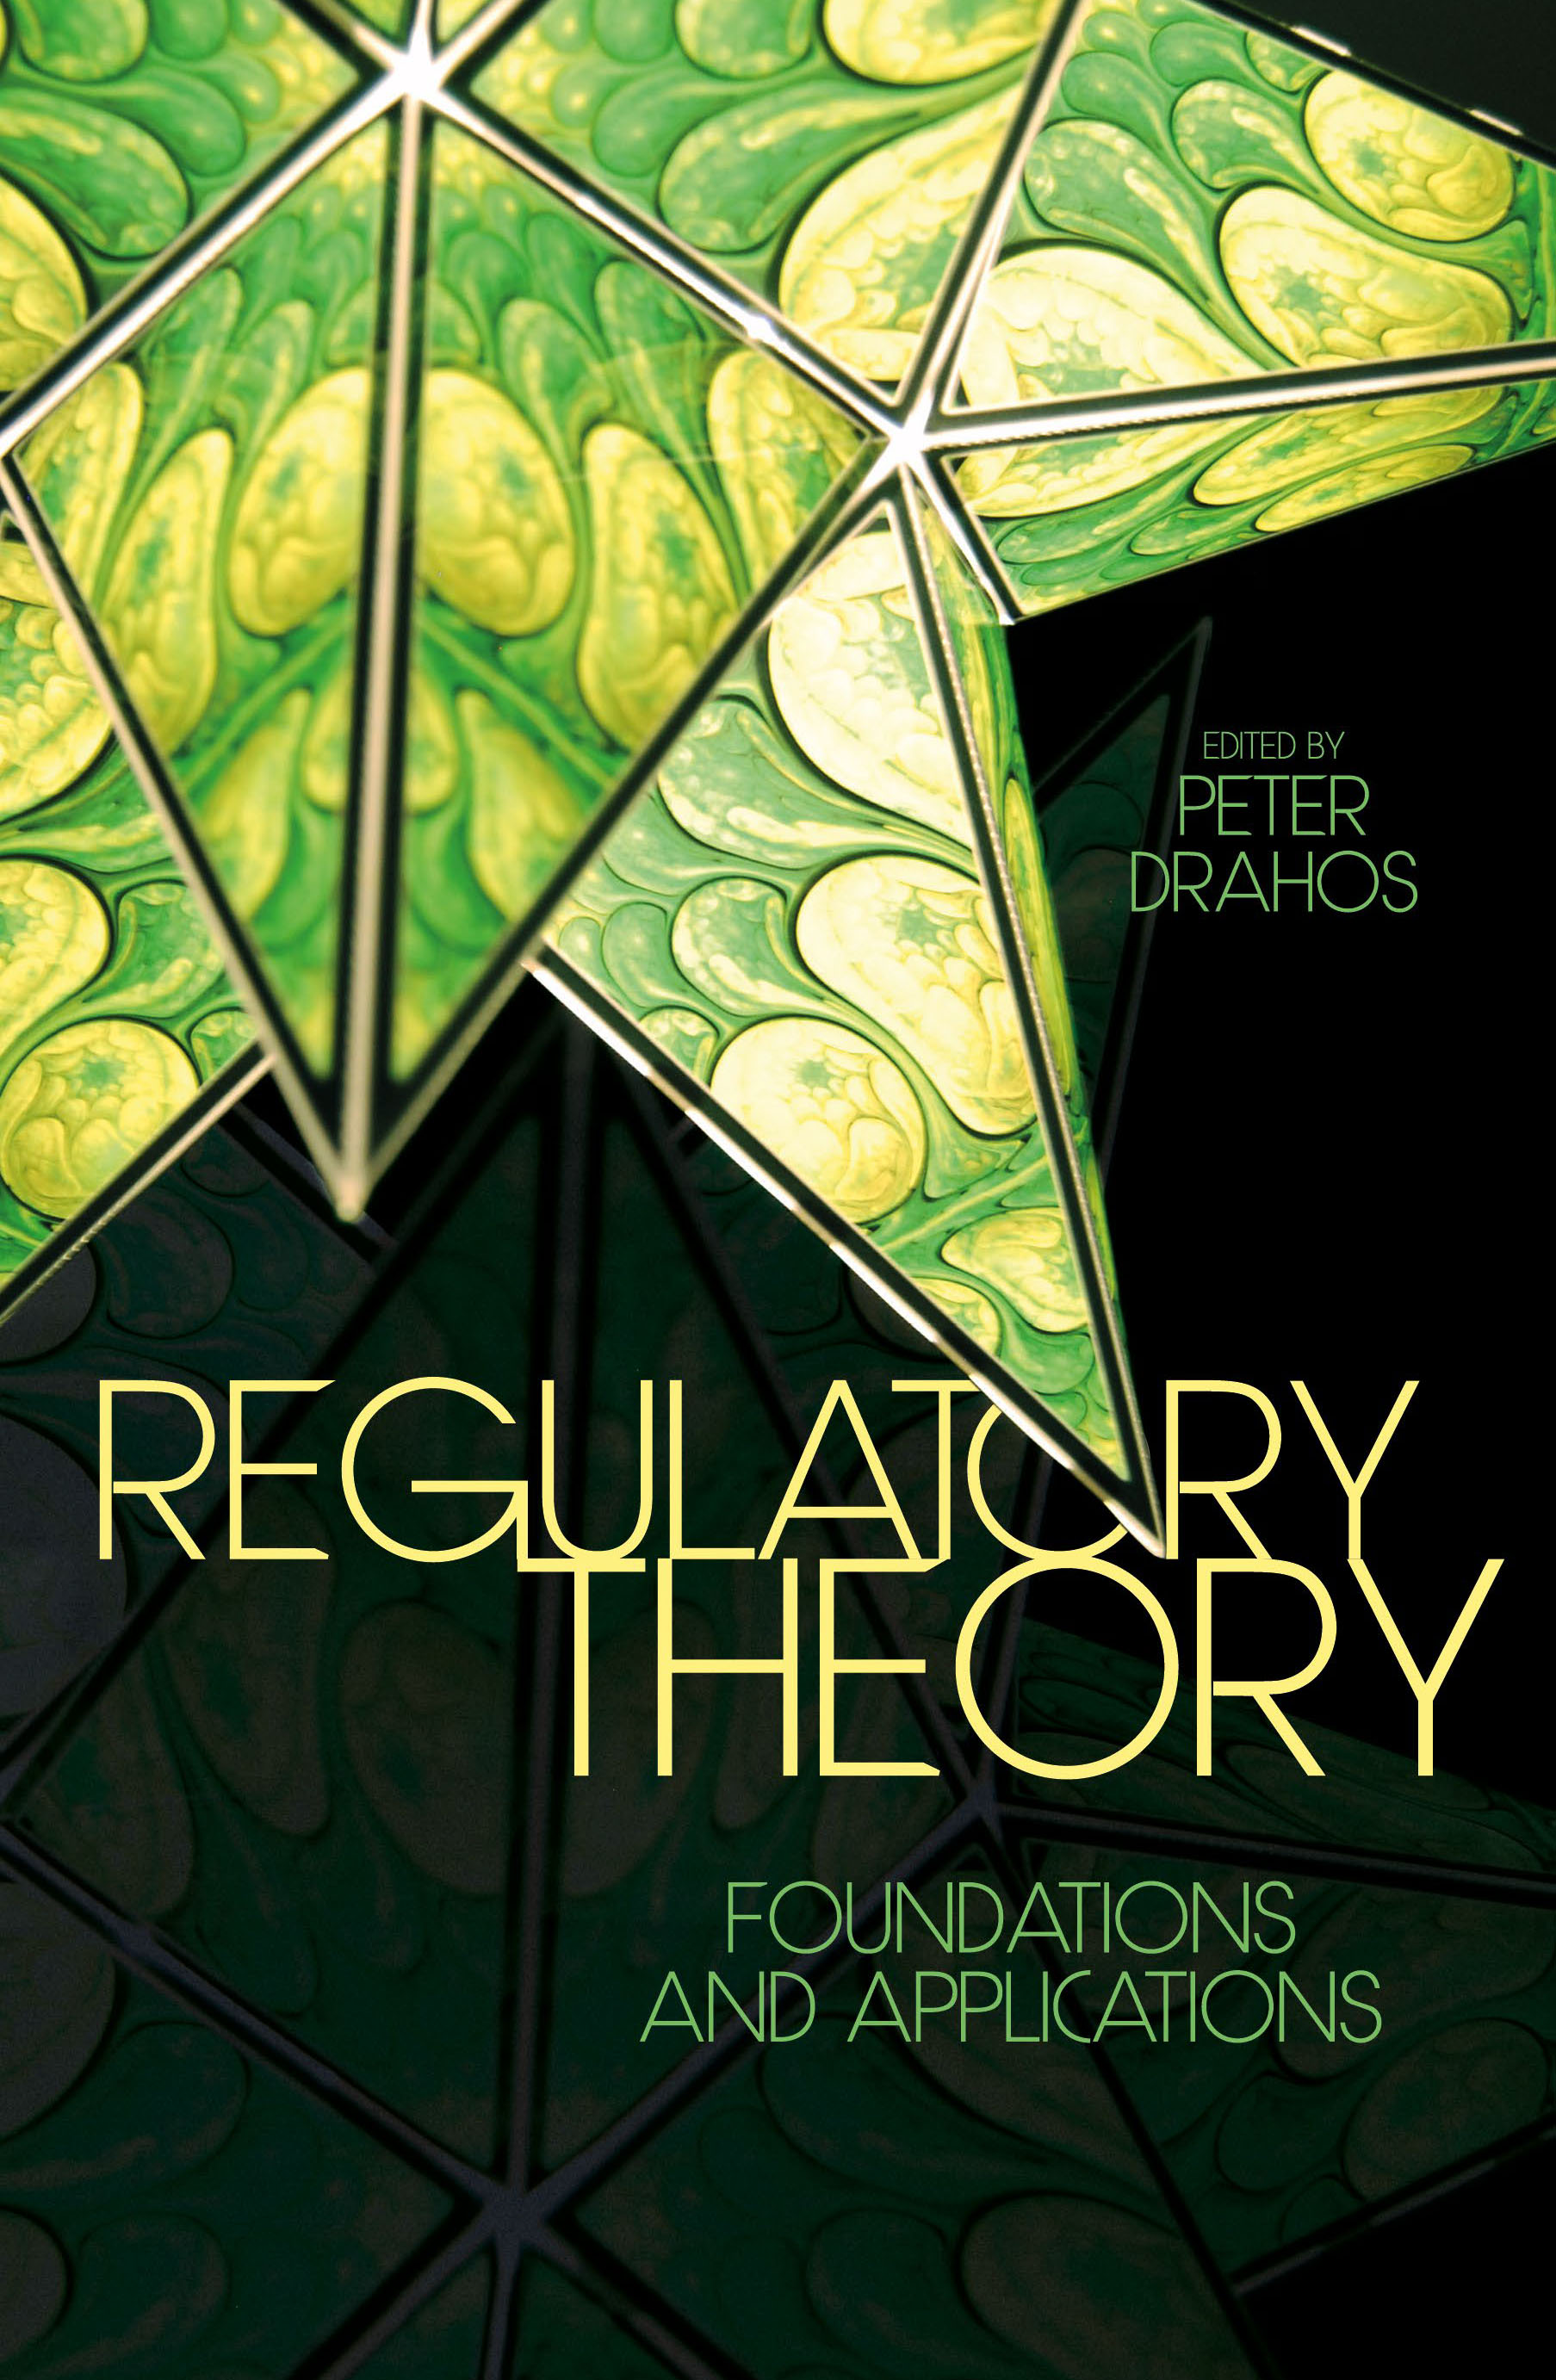 applications of responsive regulation theory in australia and overseas